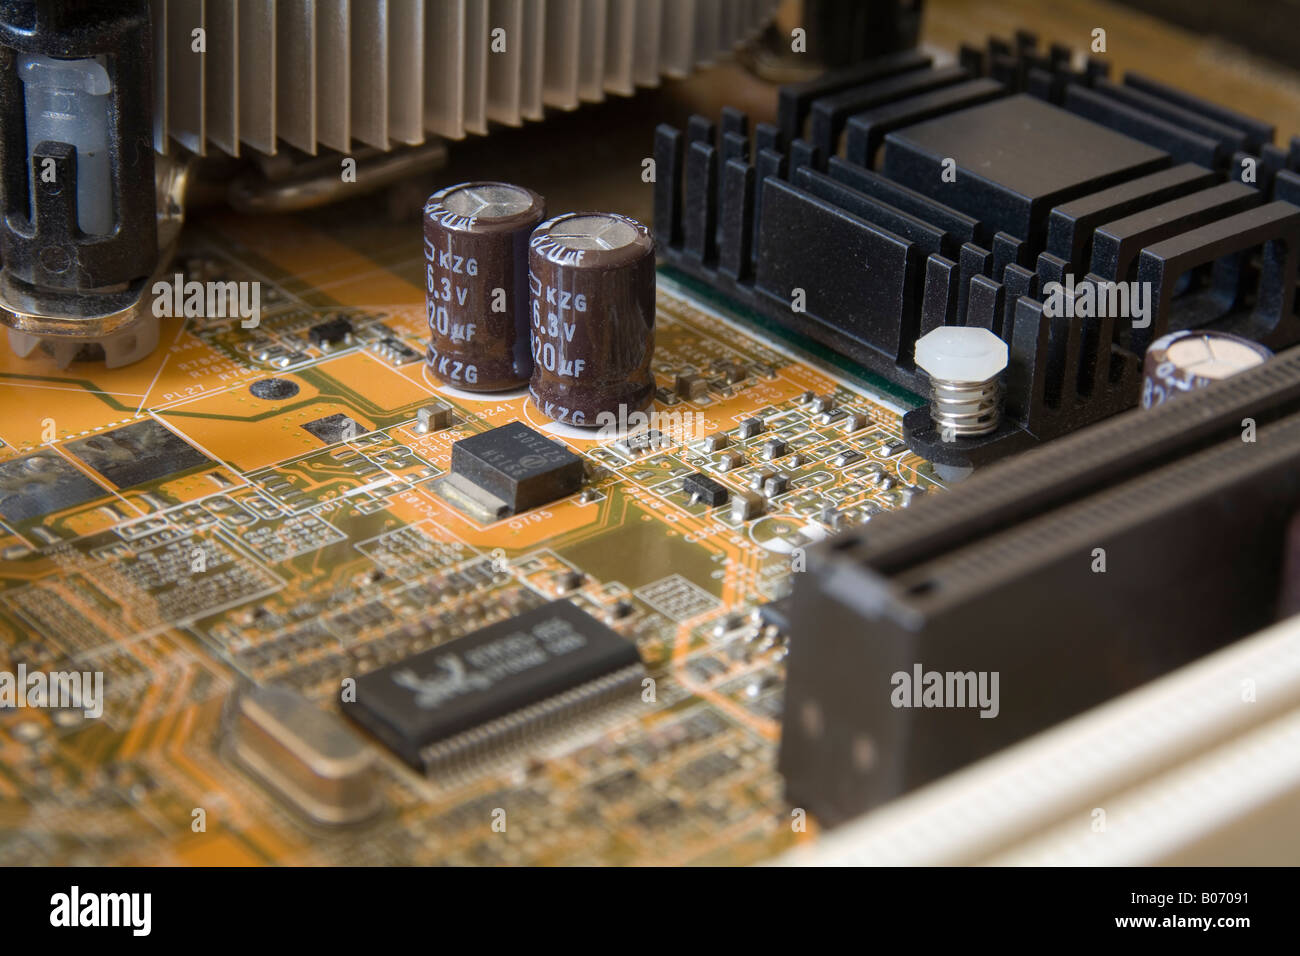 twin electrolytic capacitors stand tall on the electronic motherboard main board of a modern era desktop computer - Stock Image